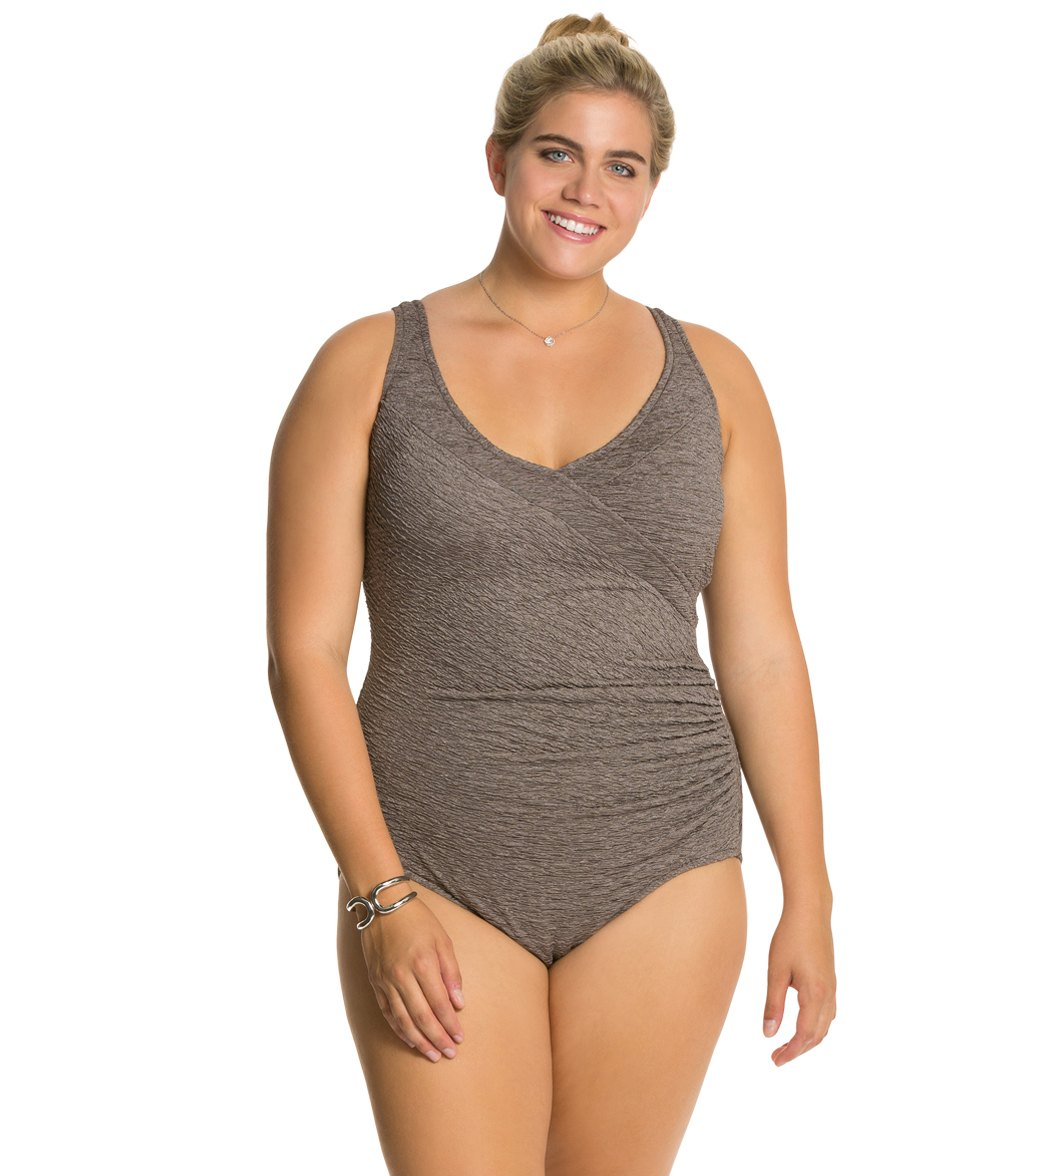 d63e6a094f Rauched Plus Sized Swimwear. Penbrooke Plus Size Krinkle Mock Surplice  Chlorine Resistant One Piece Swimsuit. Layered Patterns